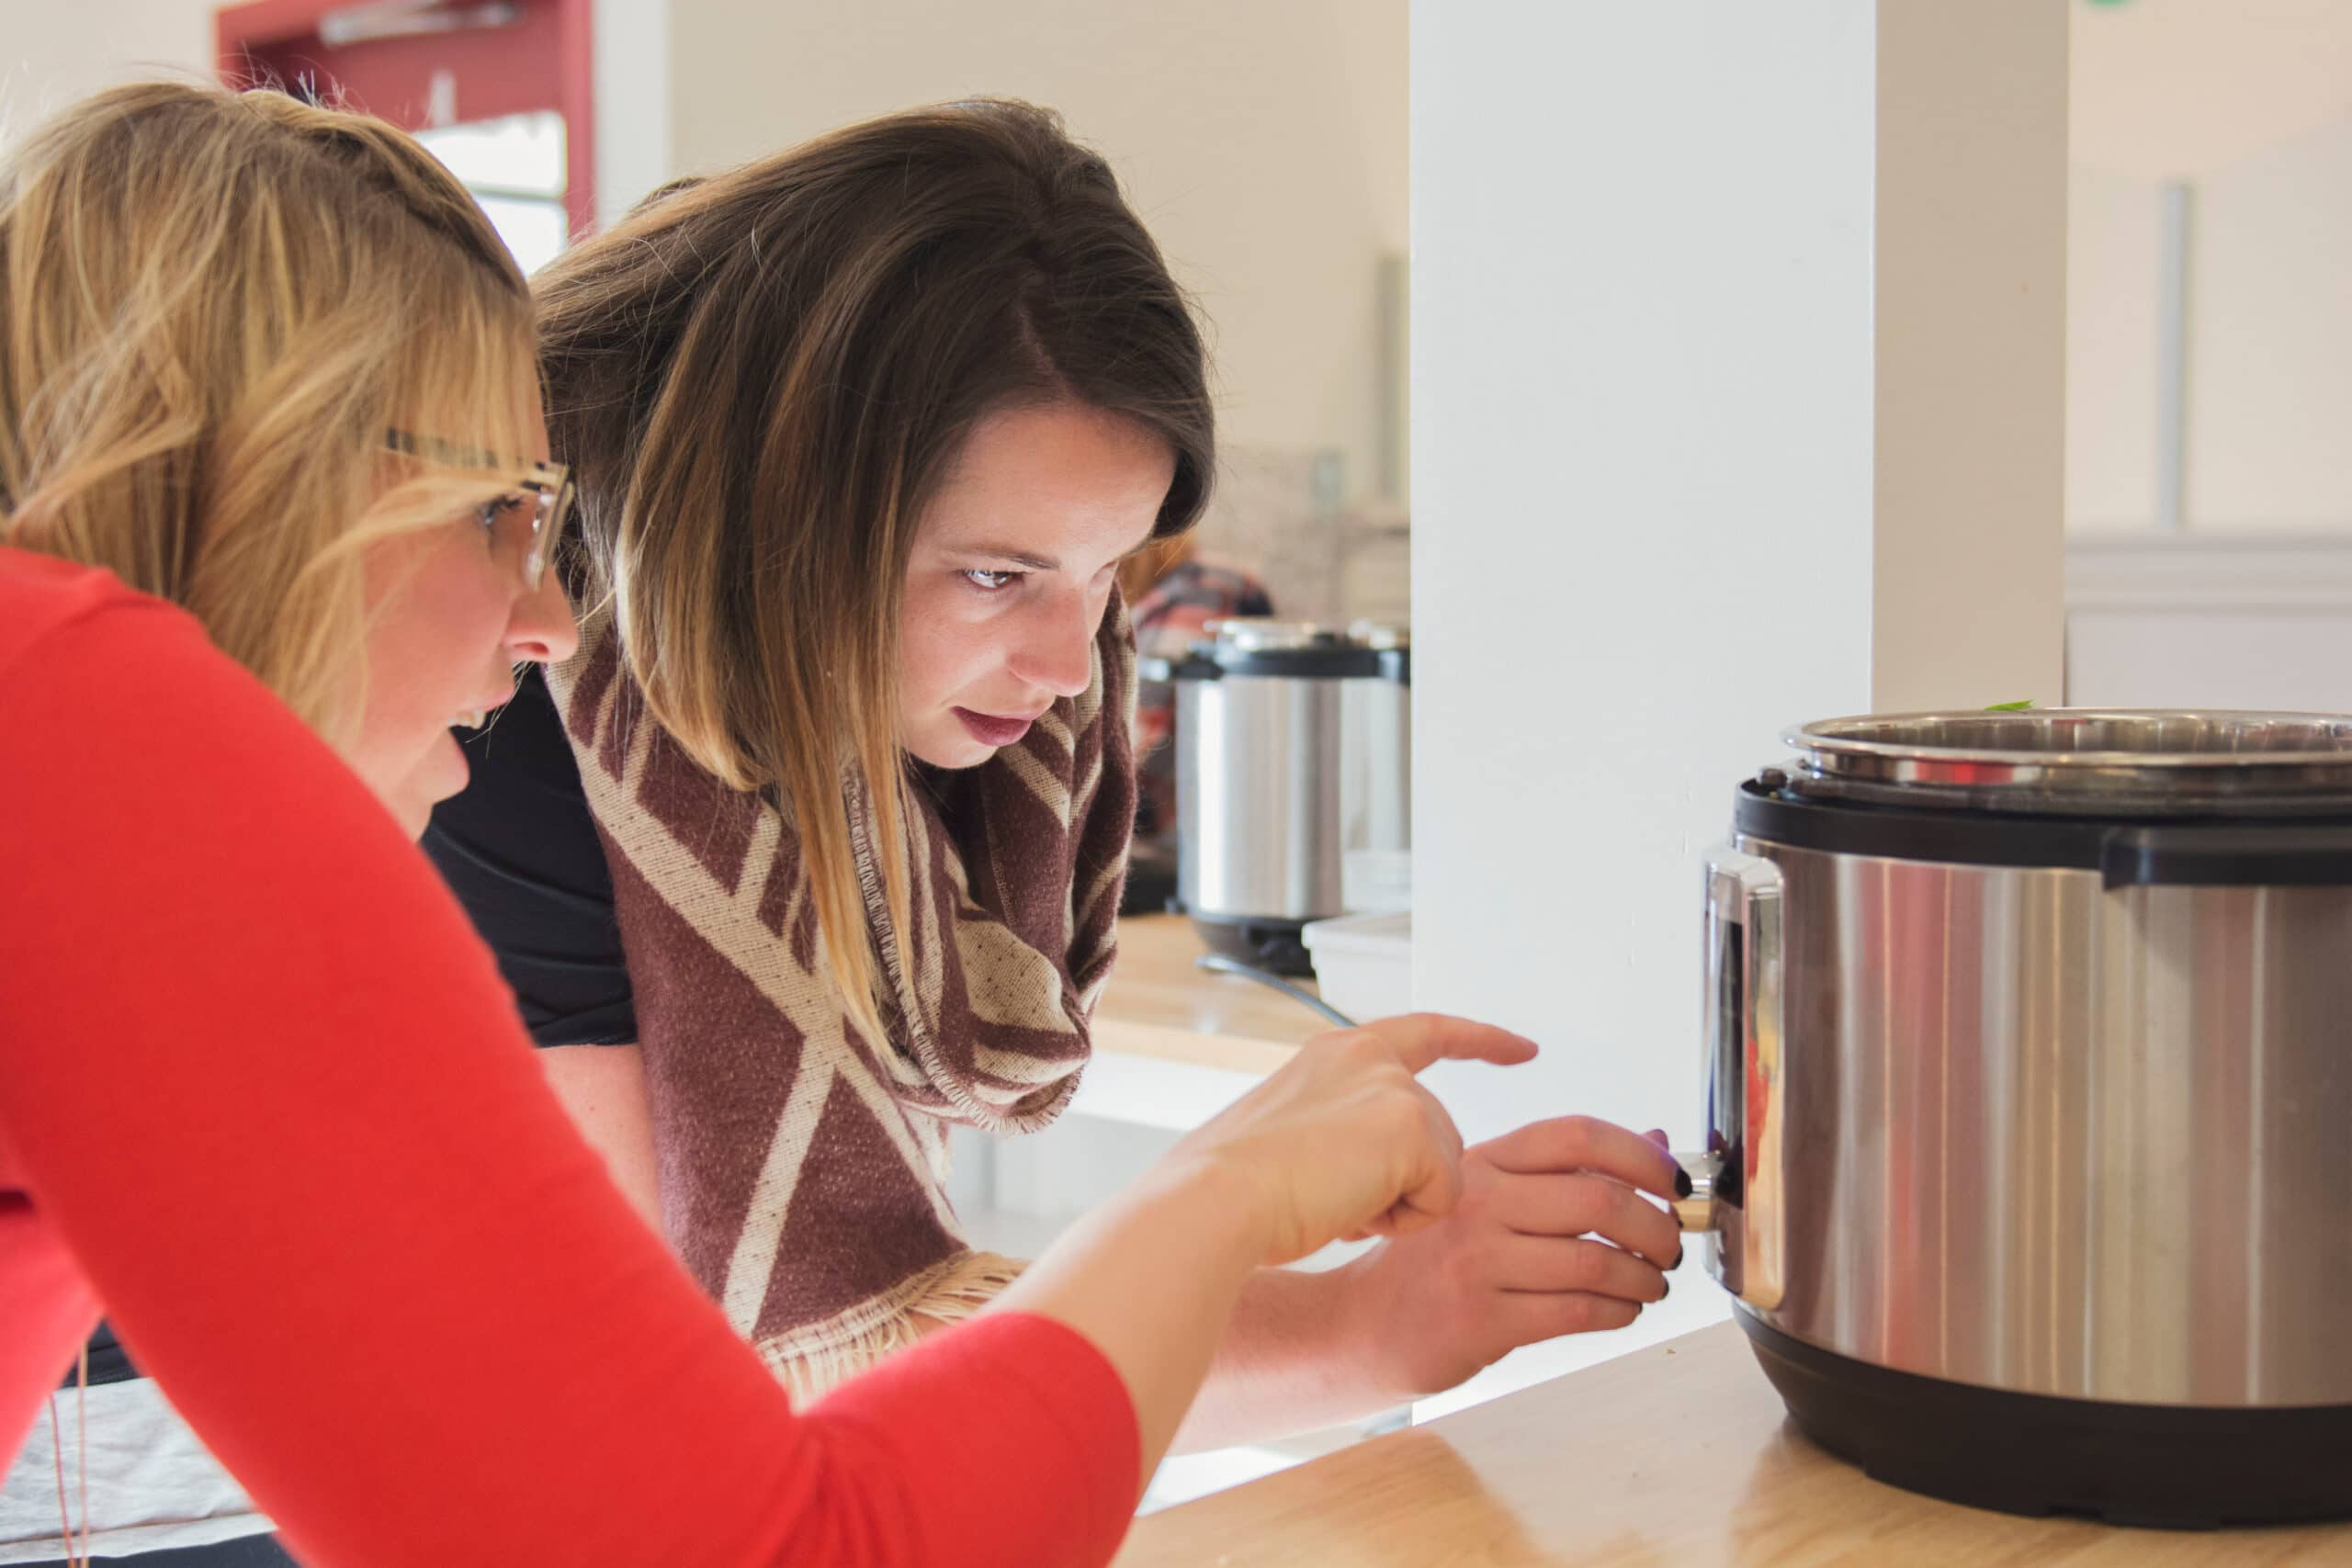 Interacting with Instant Pots